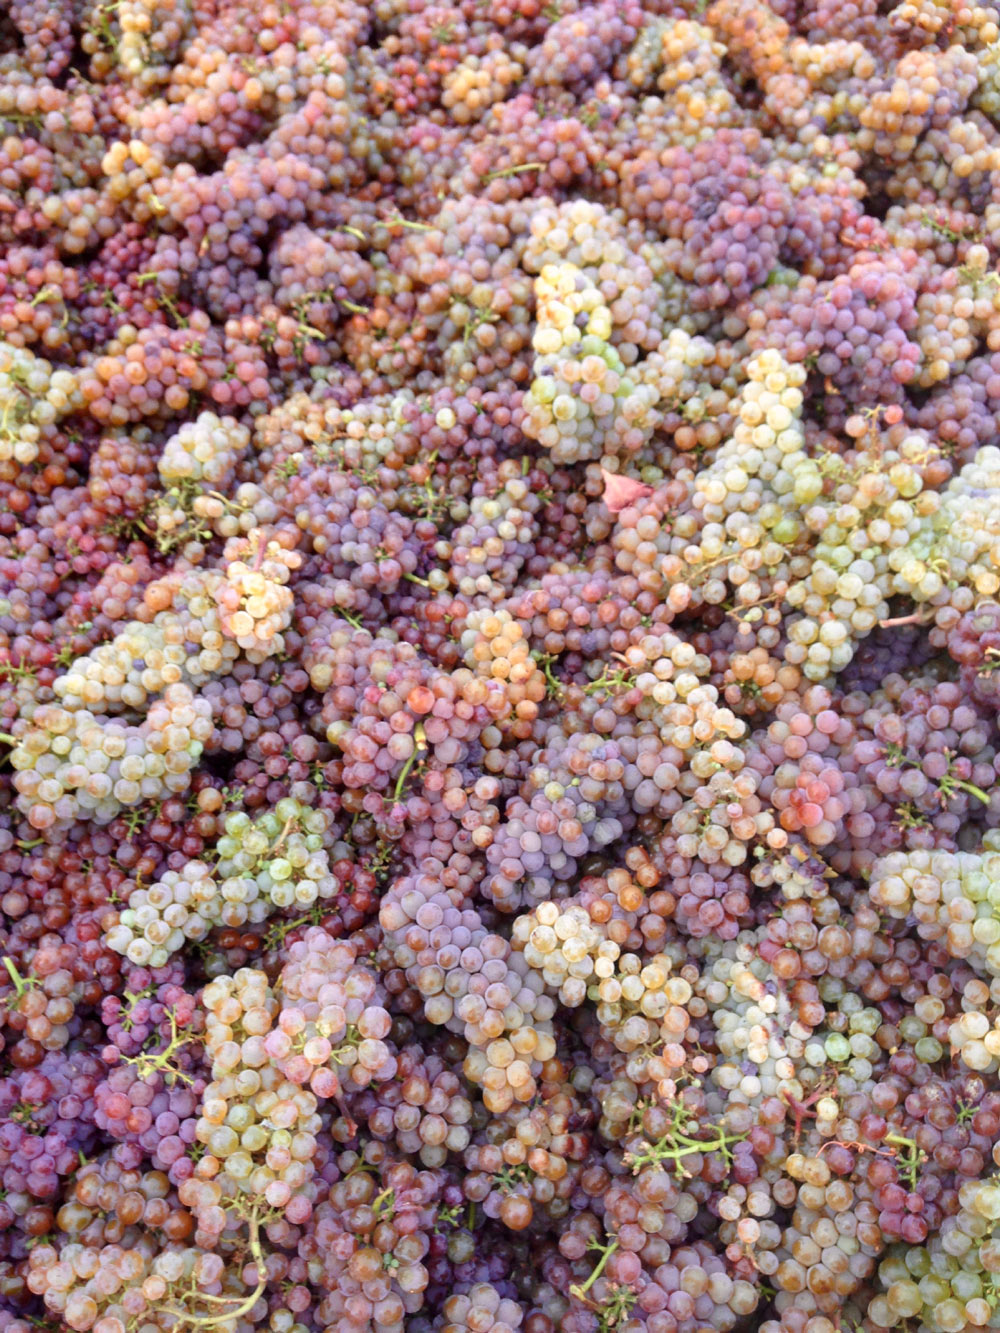 The colorful grapes from Compagni Portis